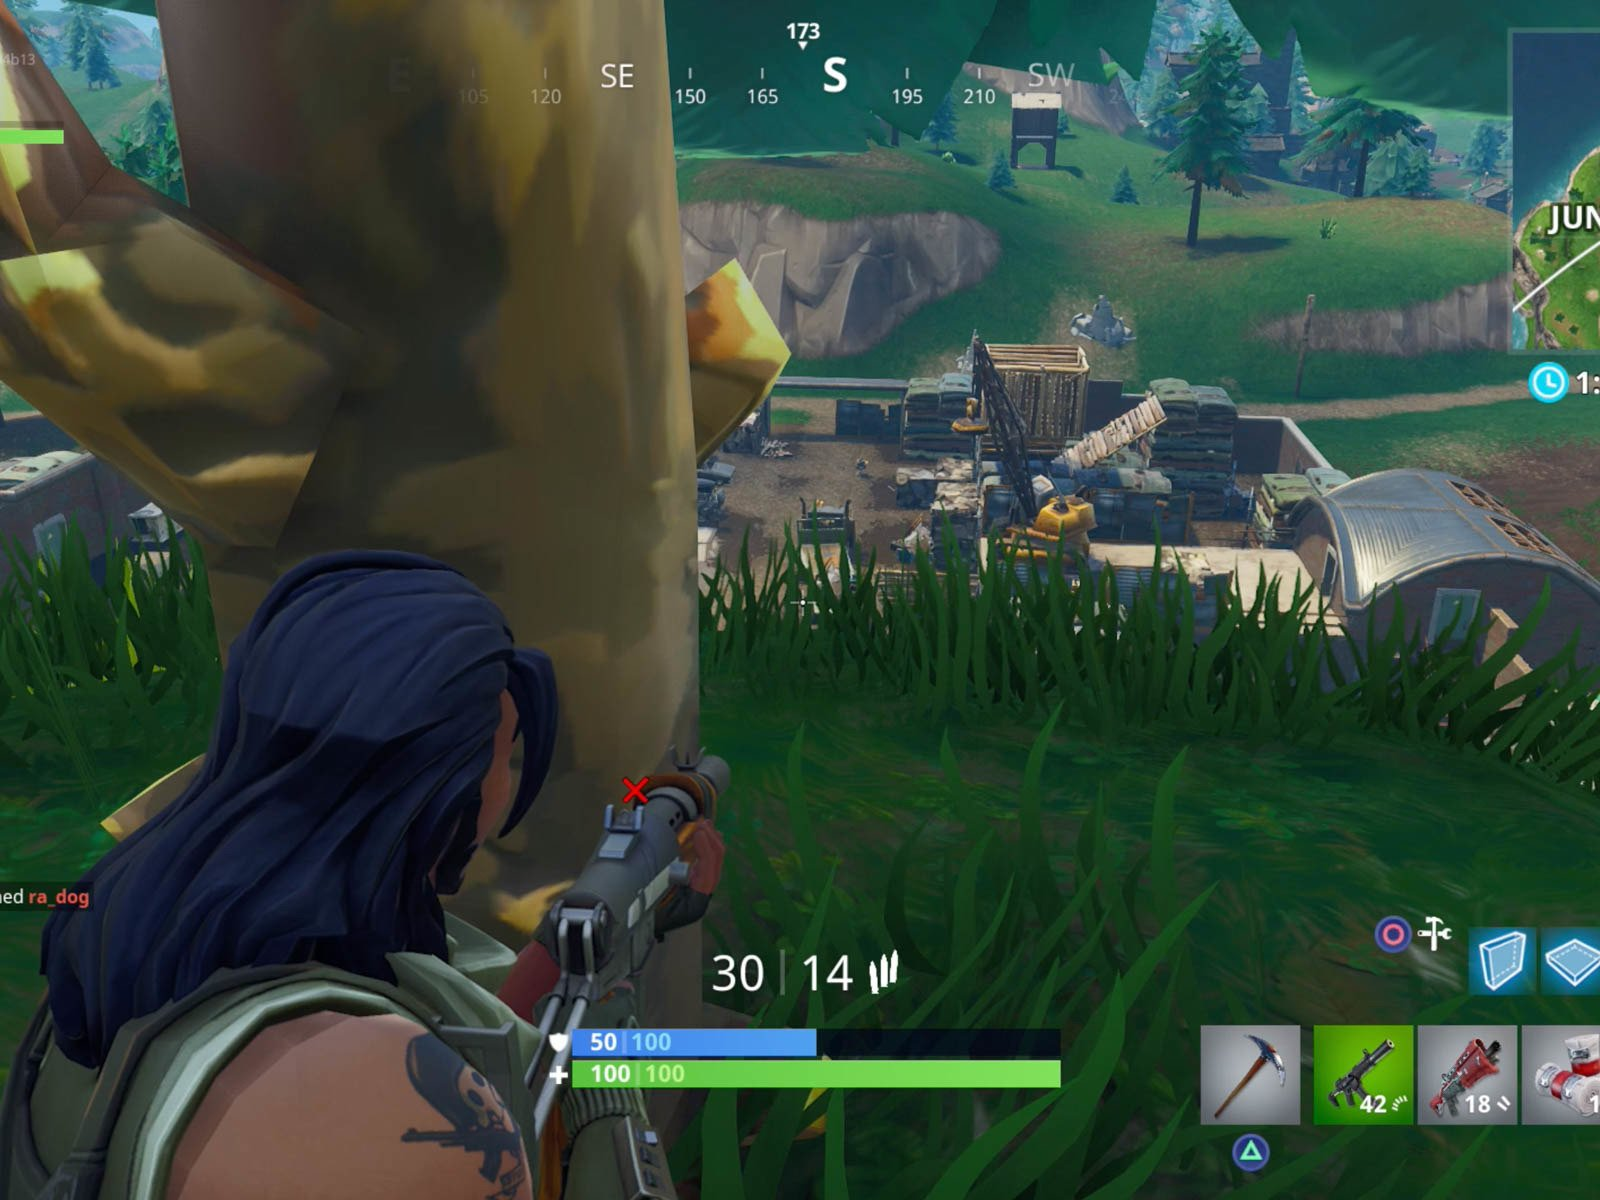 Amazon.com: Watch Clip: Fortnite Battle Royale Playthrough ...